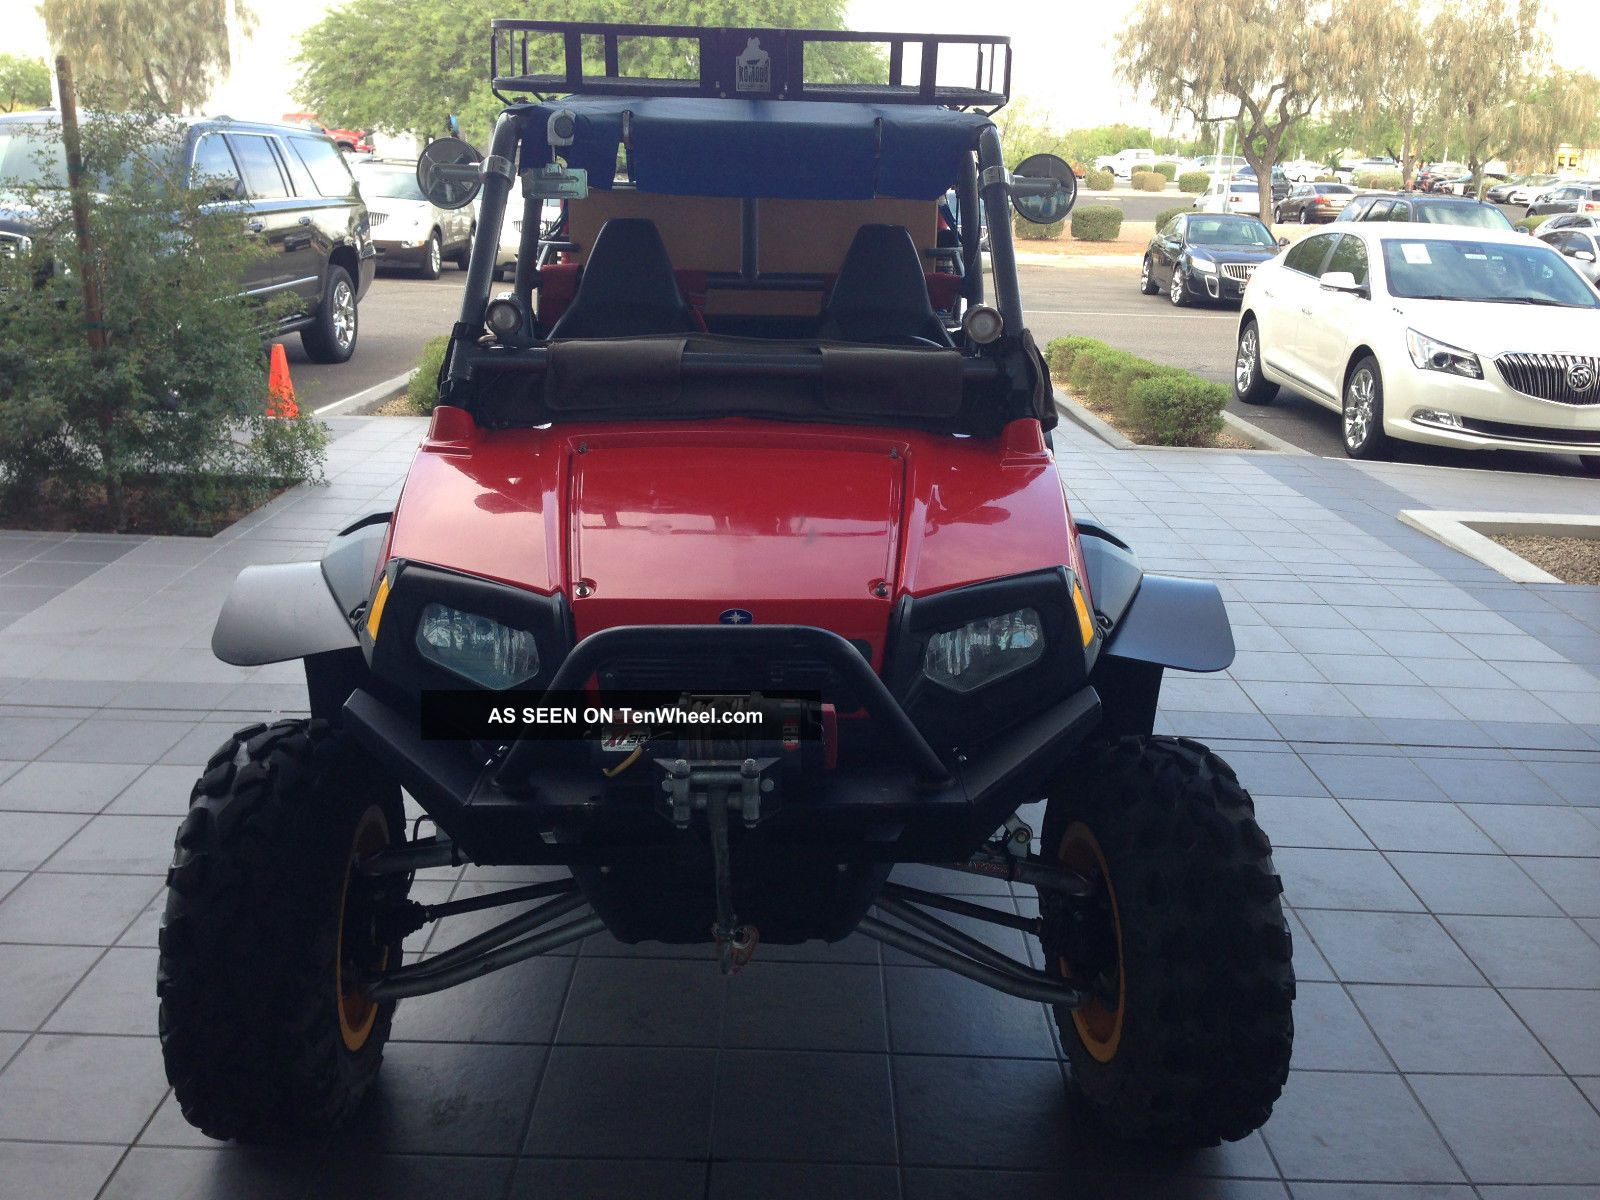 2008 Polaris Rzr UTVs photo